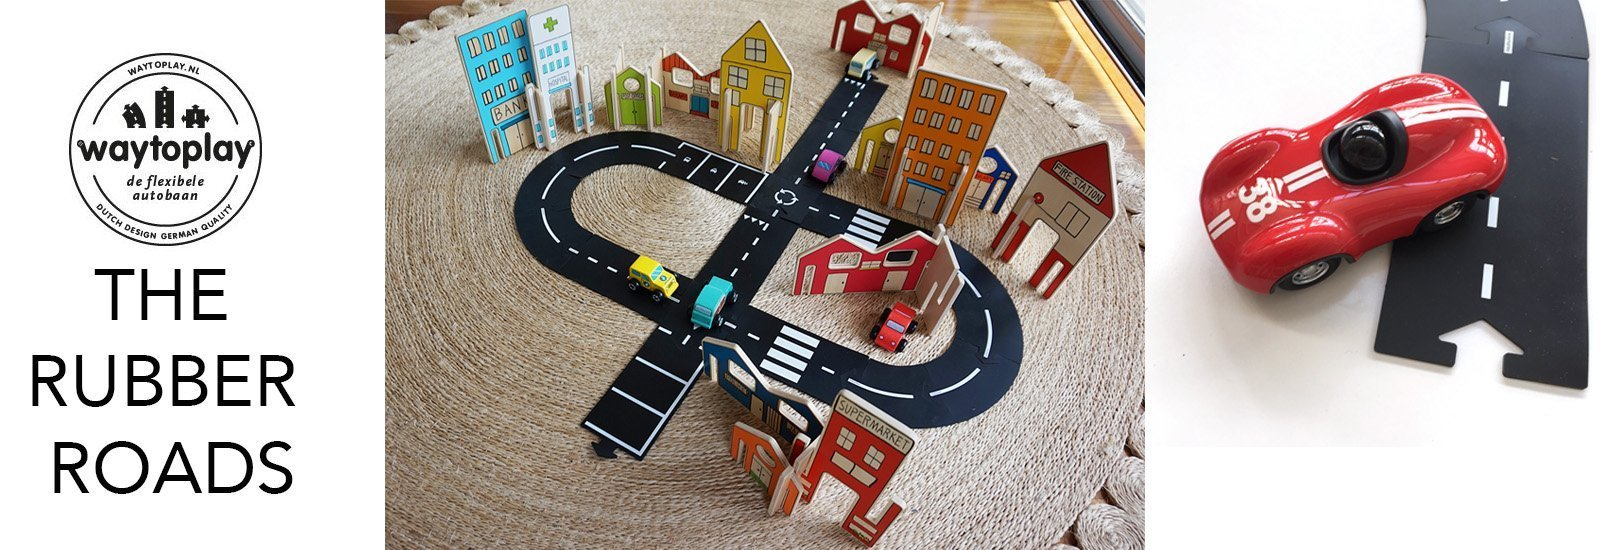 WAYTOPLAY RUBBER ROADS car toy store